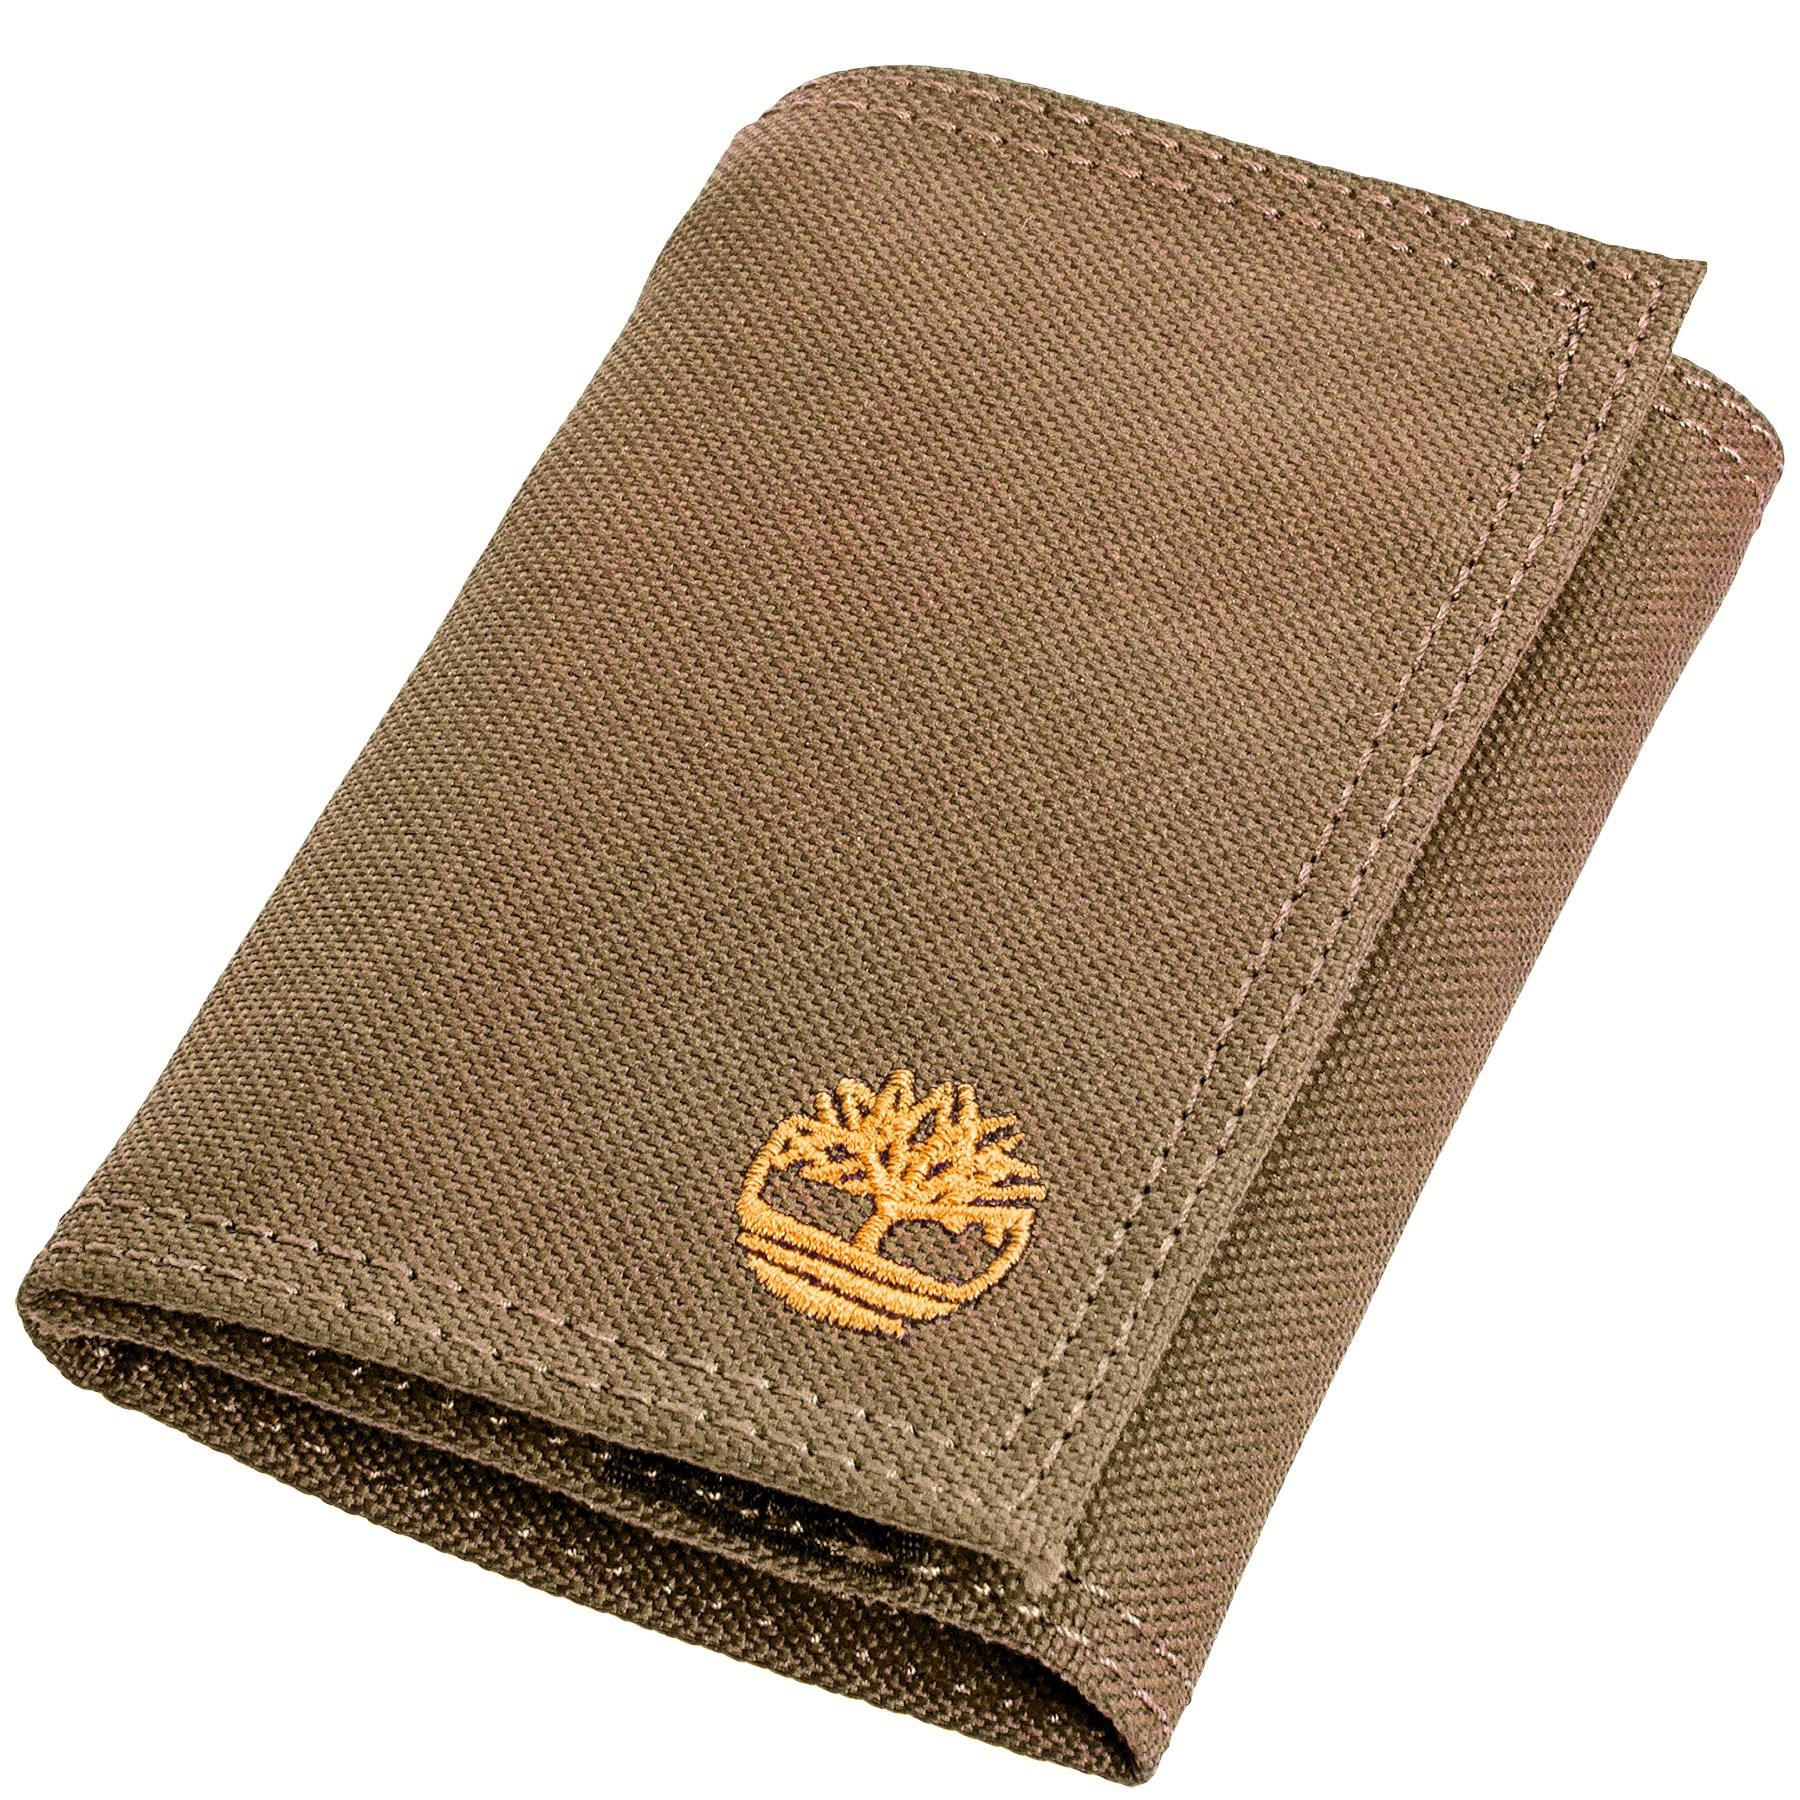 be462b2fb0ce Lyst - Timberland Nylon Trifold Wallet in Natural for Men